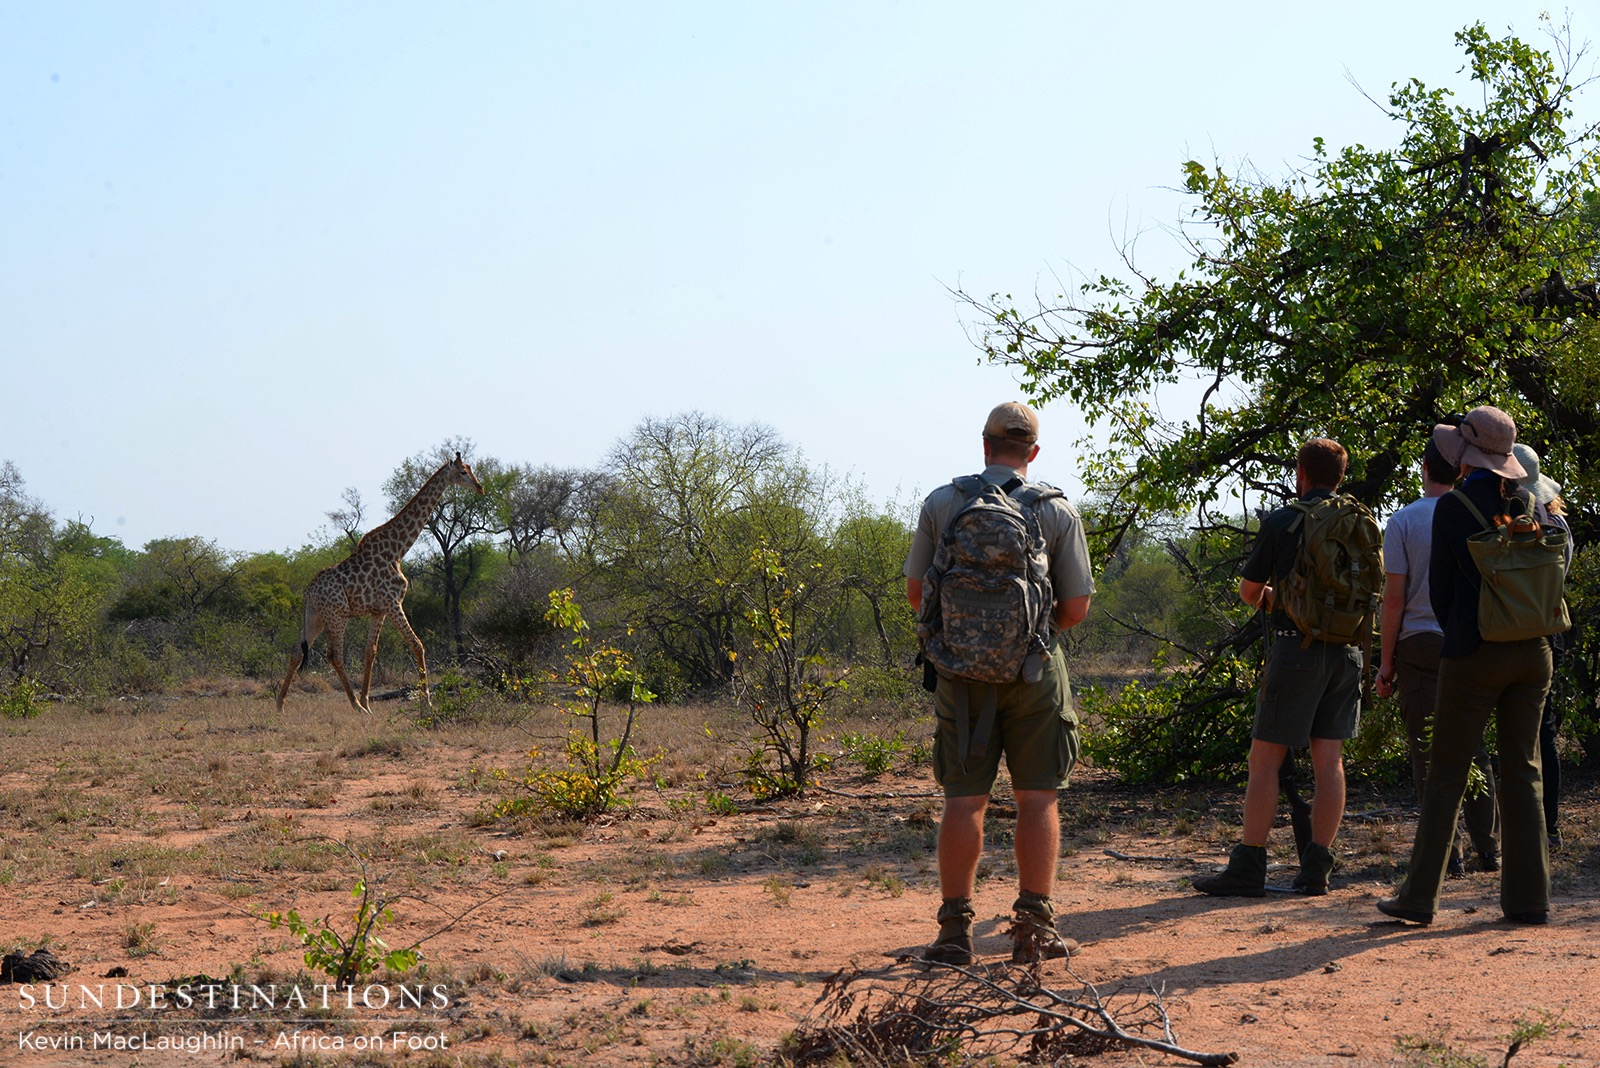 On Foot in the Bush: Africa on Foot Walking Safaris